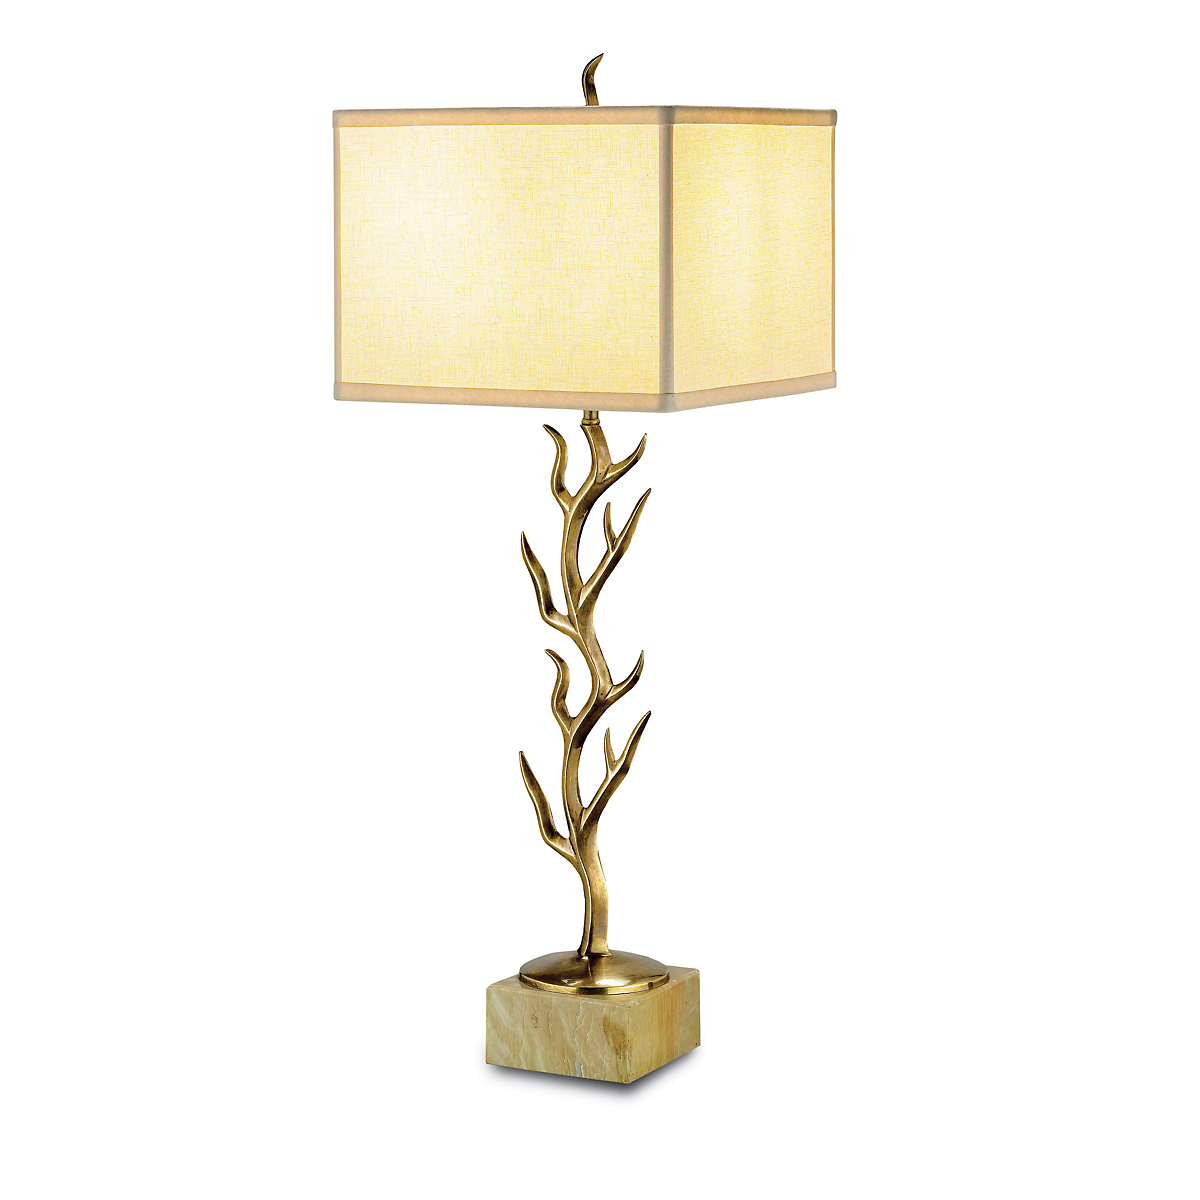 Currey & Company Algonquin Table Lamp